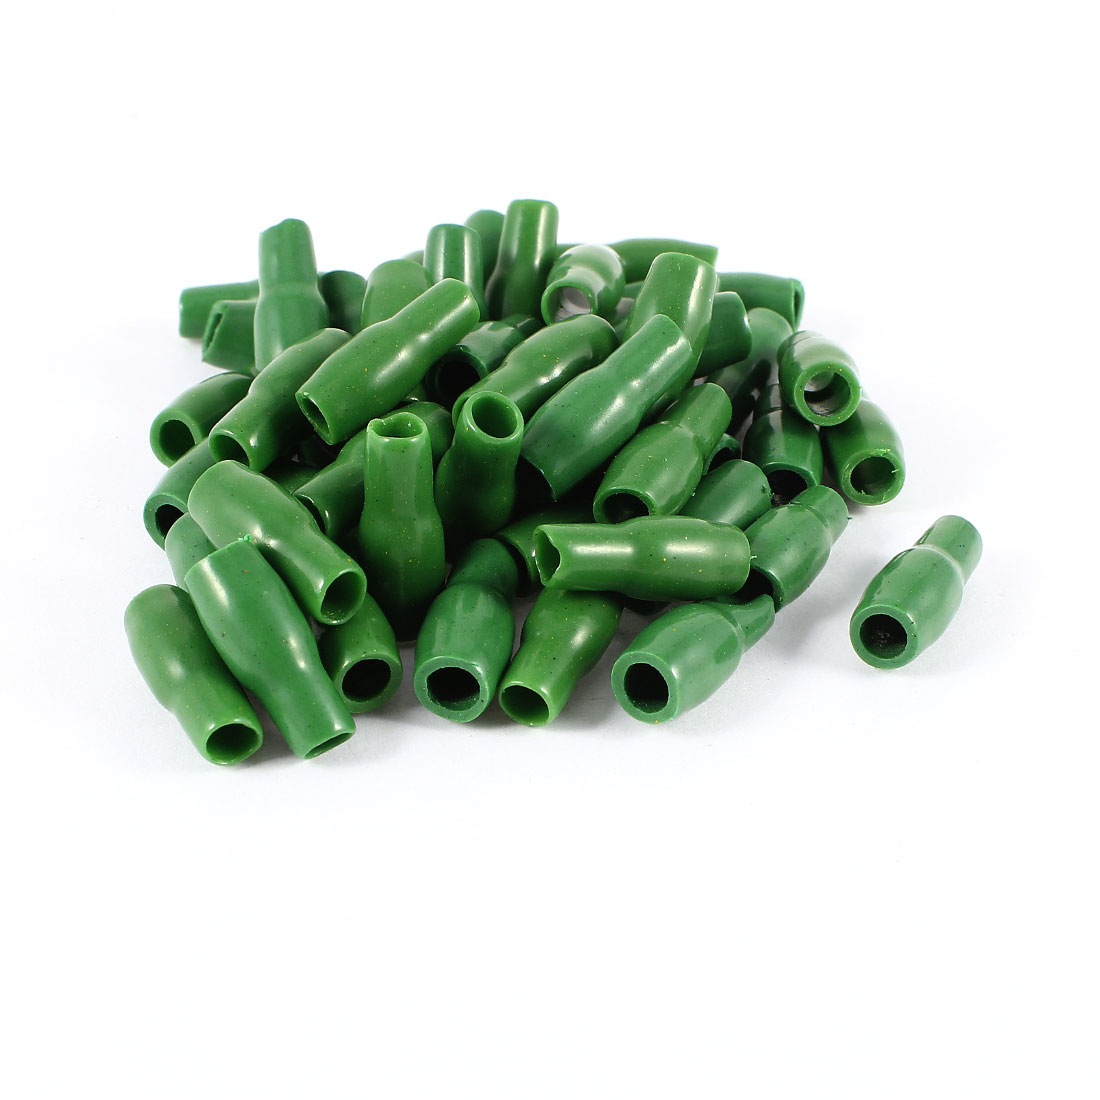 50 Pcs Green Soft PVC Wire V-3.5 4mm2 Crimp Terminal End Insulated Sleeves Caps Cover